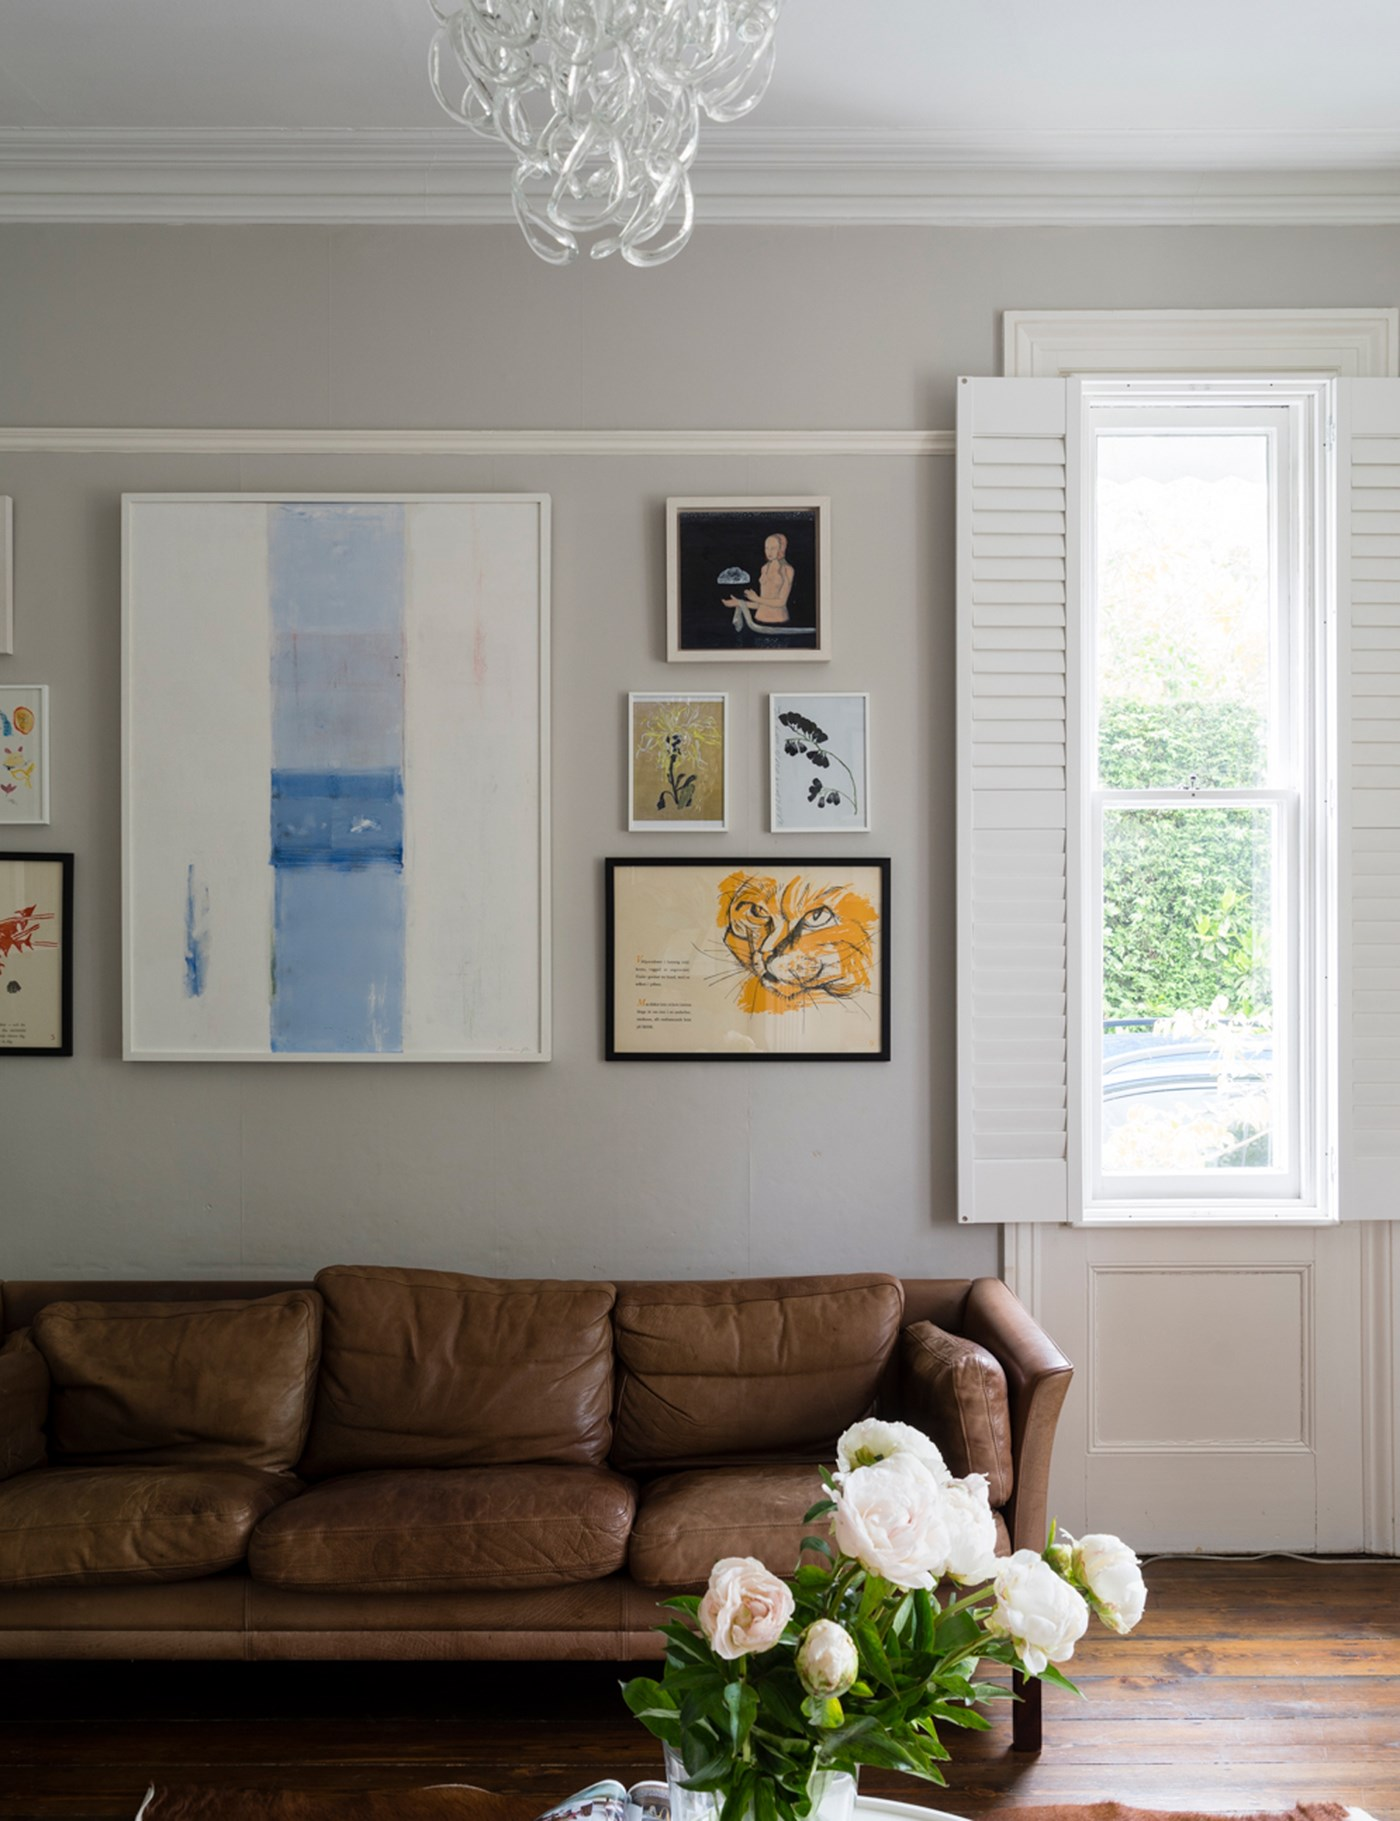 20+ Beautiful Light Greige Paint Colors feat. 'Purbeck Stone' from Farrow & Ball, IMAGE CREDIT: Farrow & Ball